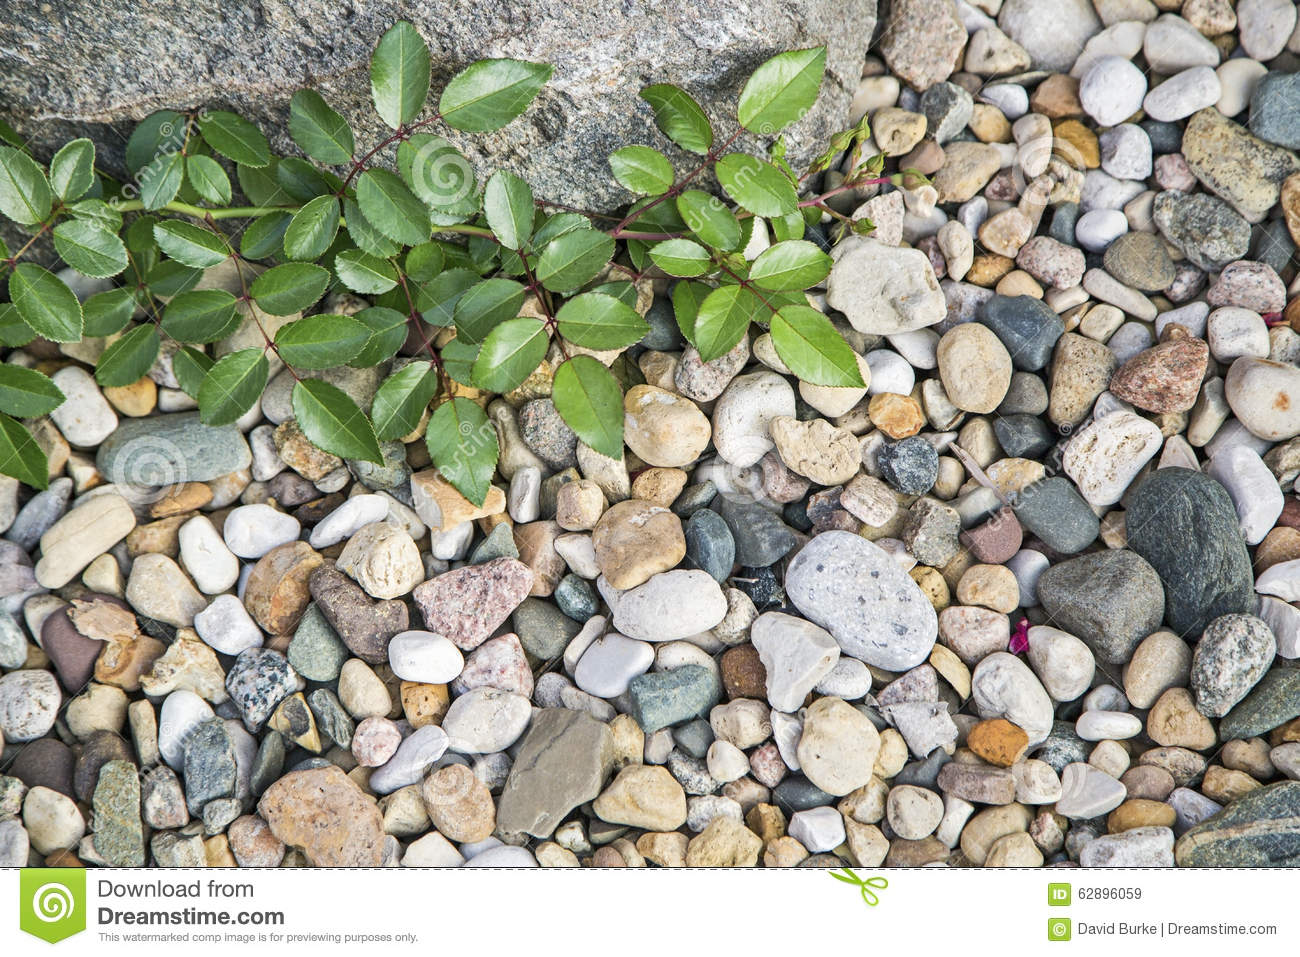 Green Plant Stones Pebbles Background Stock Image - Image of rocks ...